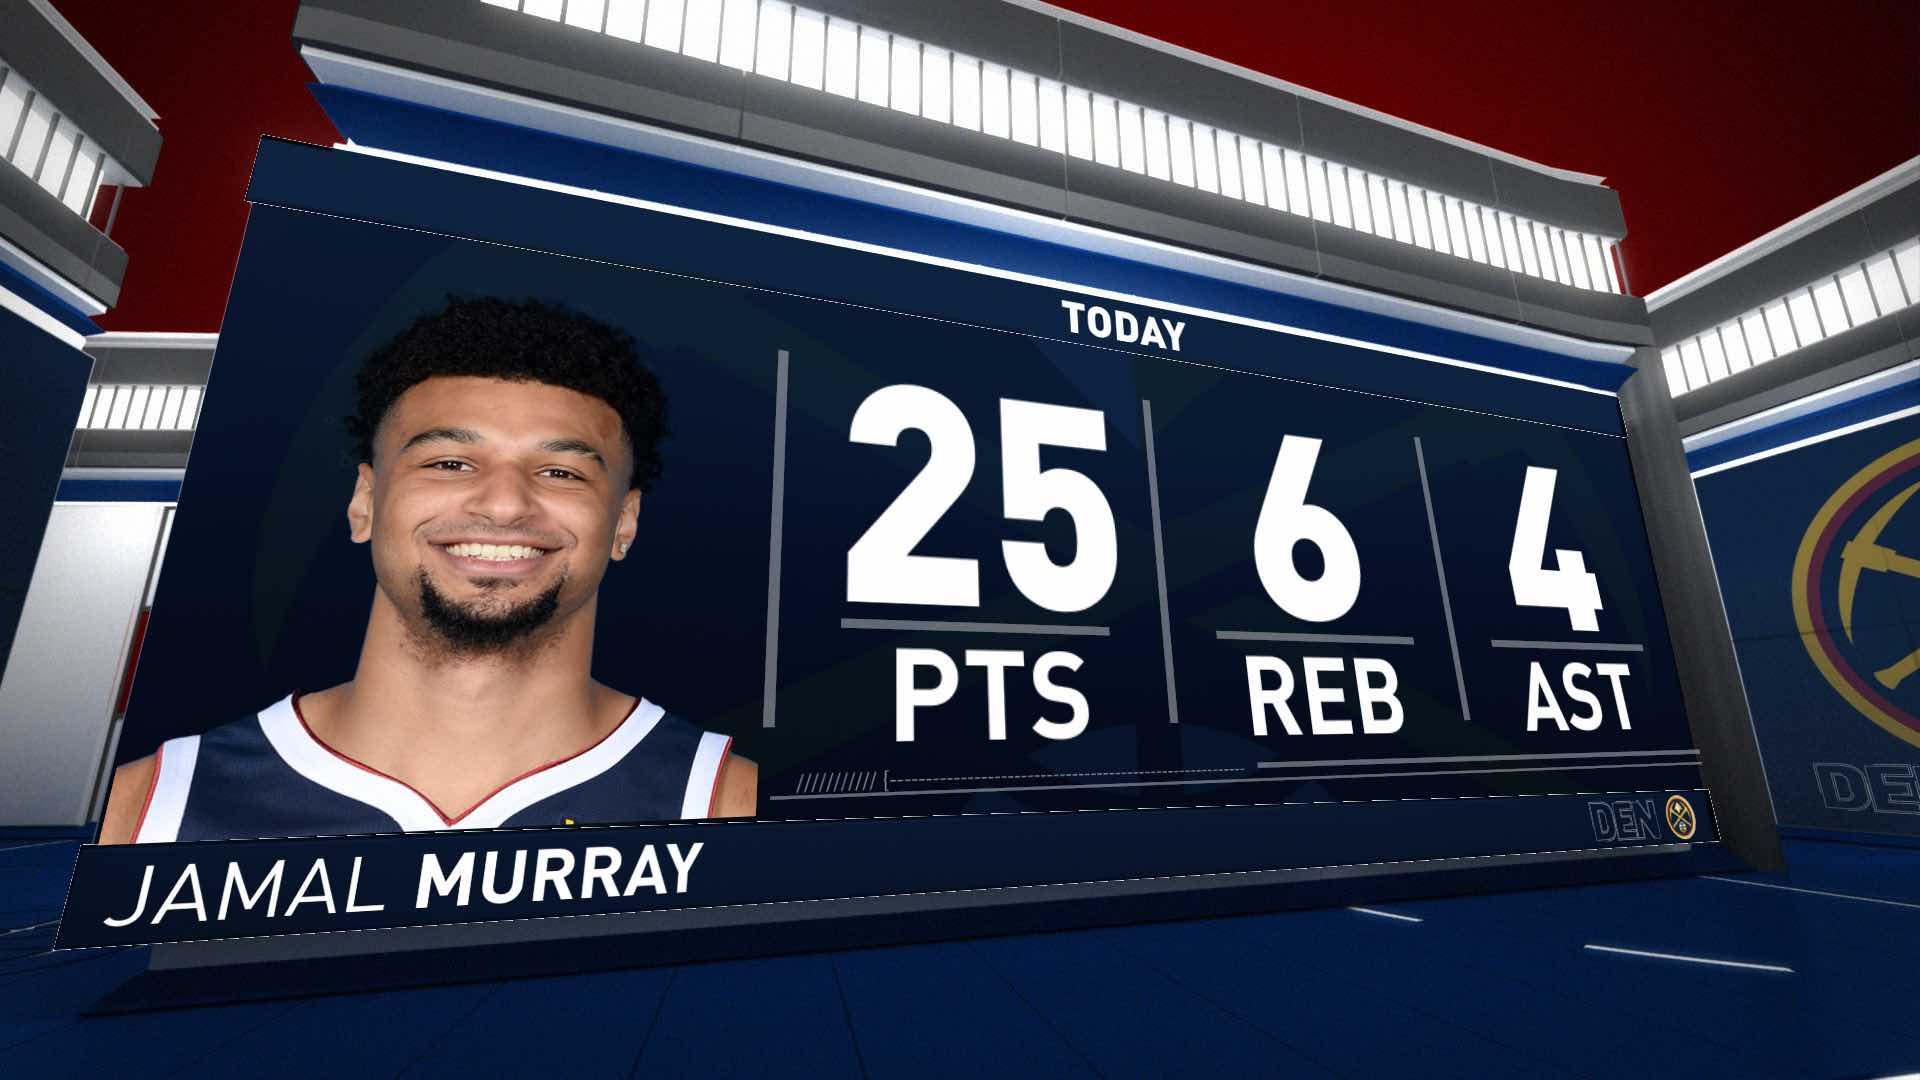 Jamal Murray (25 points) Highlights vs. Los Angeles Lakers